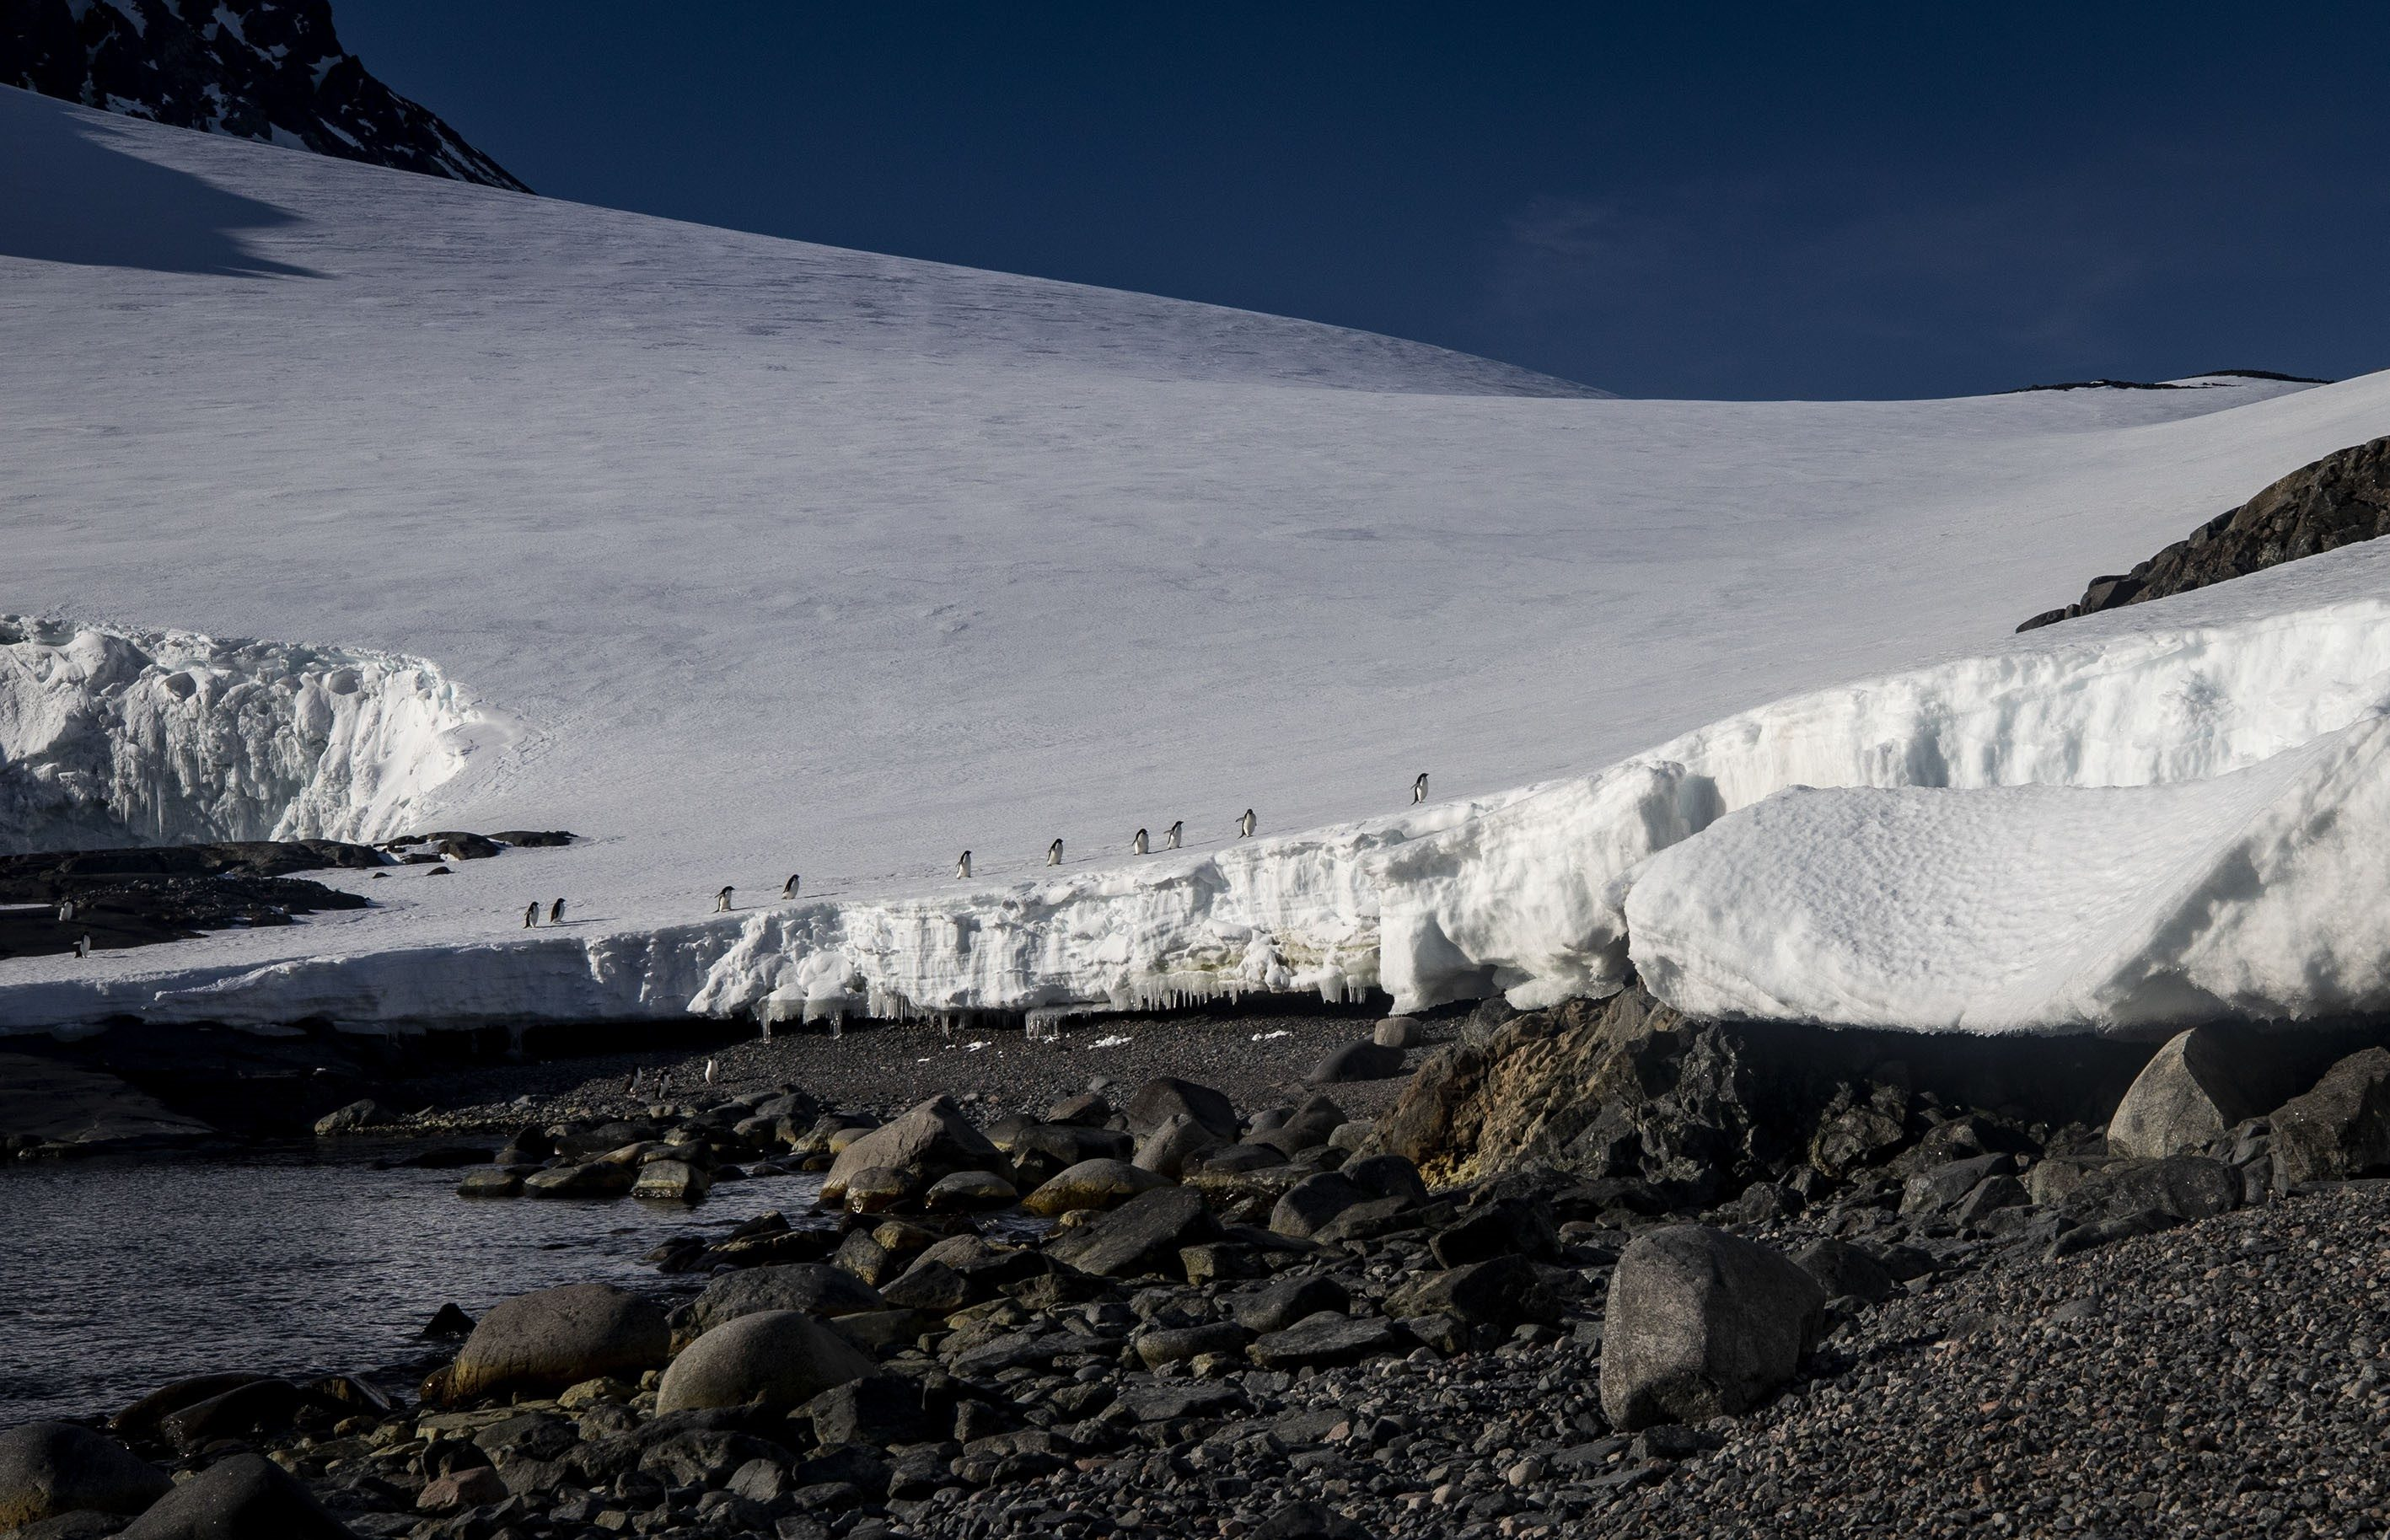 Antarctica: The White Continent